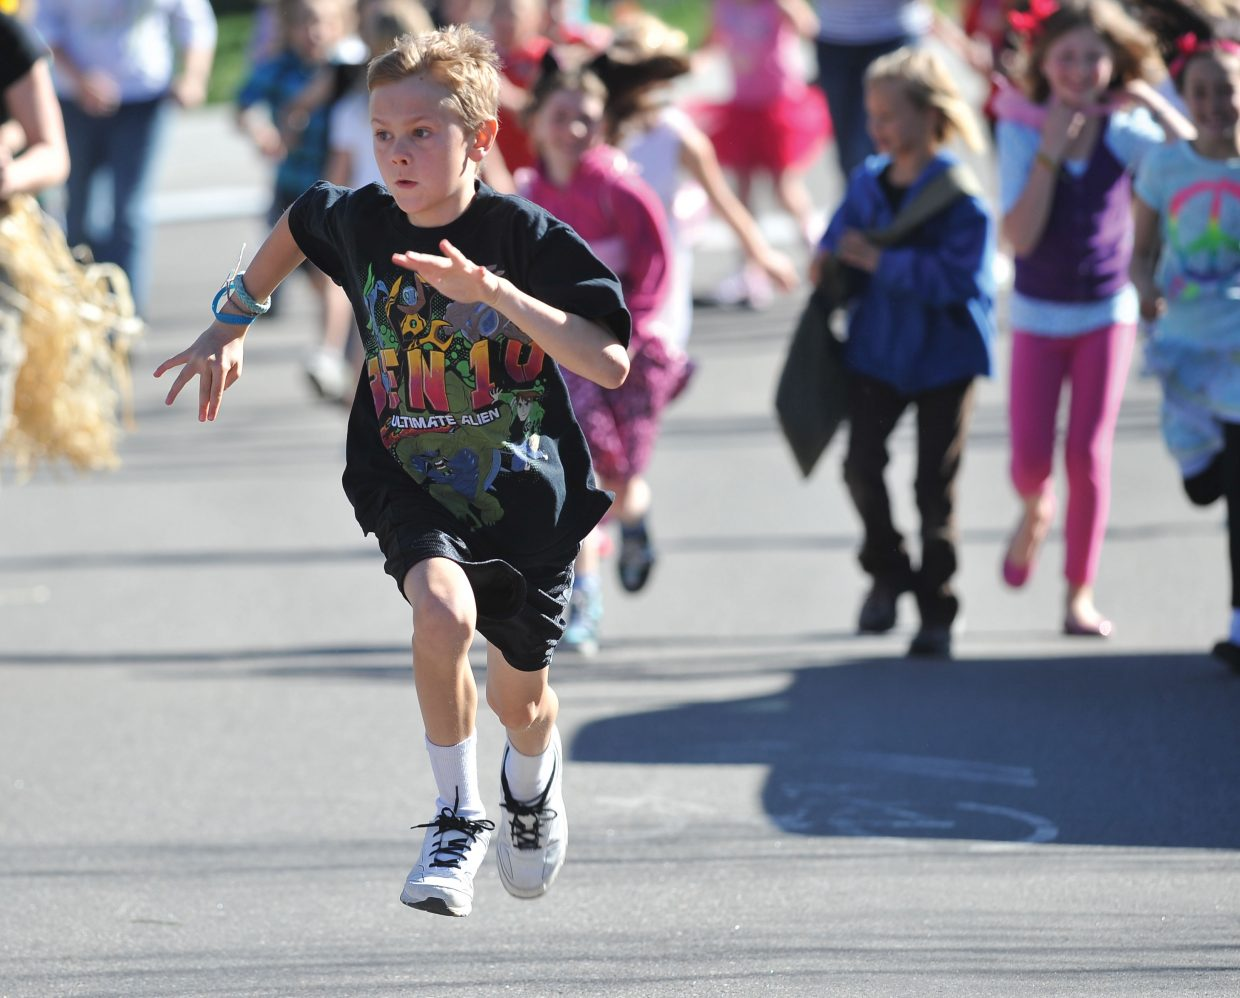 Soda Creek Elementary School student Toby Morse makes his way along Eighth Street on Friday during Jenna's Fun Run. The run was a way to celebrate the life of Jenna Gruben Morrill, who was a faculty member at the school. She died Feb. 13, 2010, in a car accident.